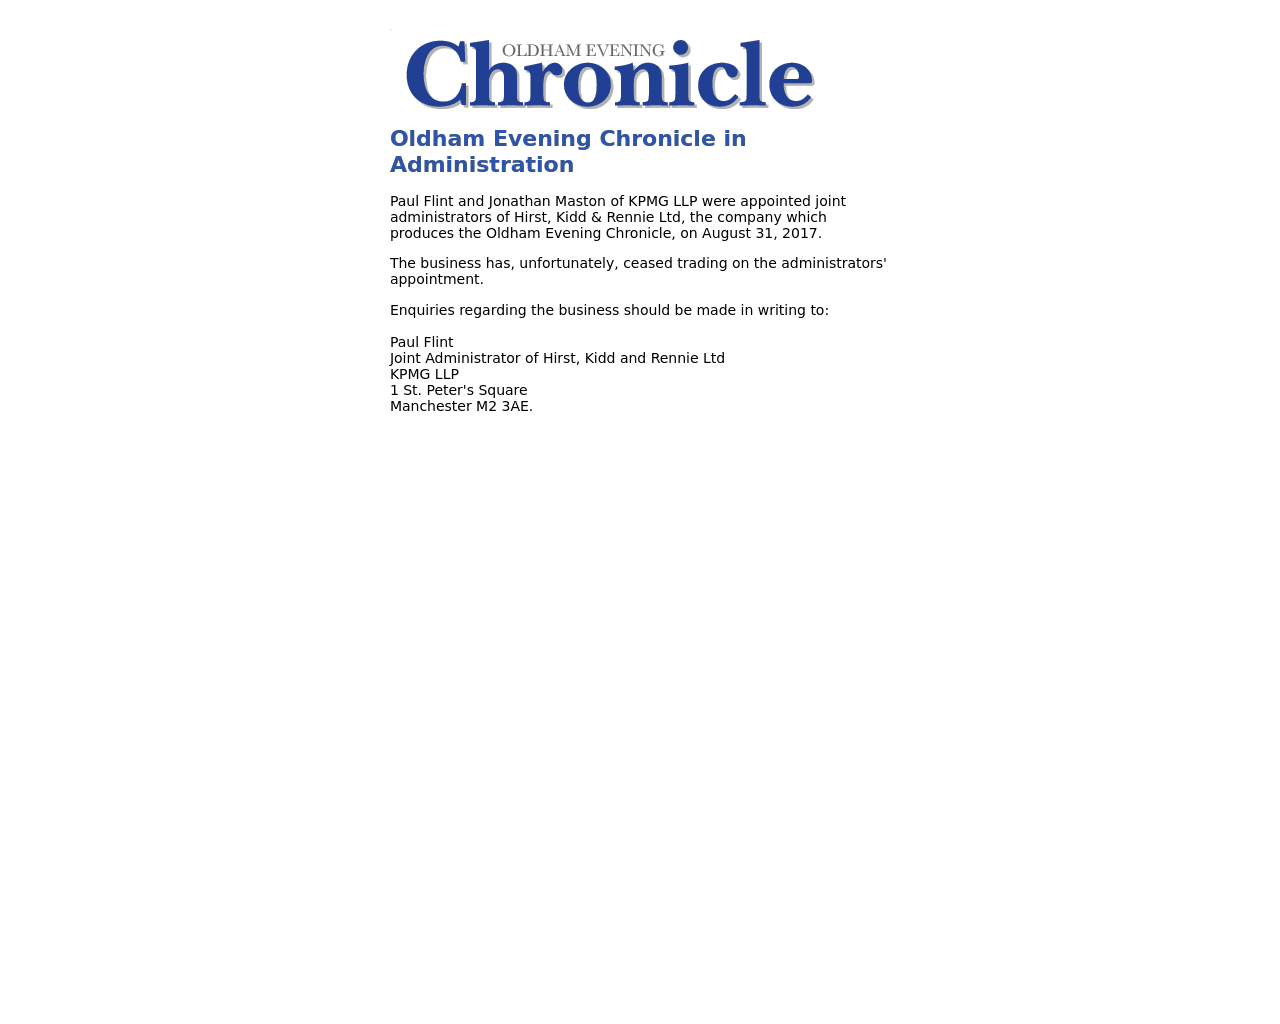 OLDHAM-EVENING-Chronicle-Advertising-Reviews-Pricing